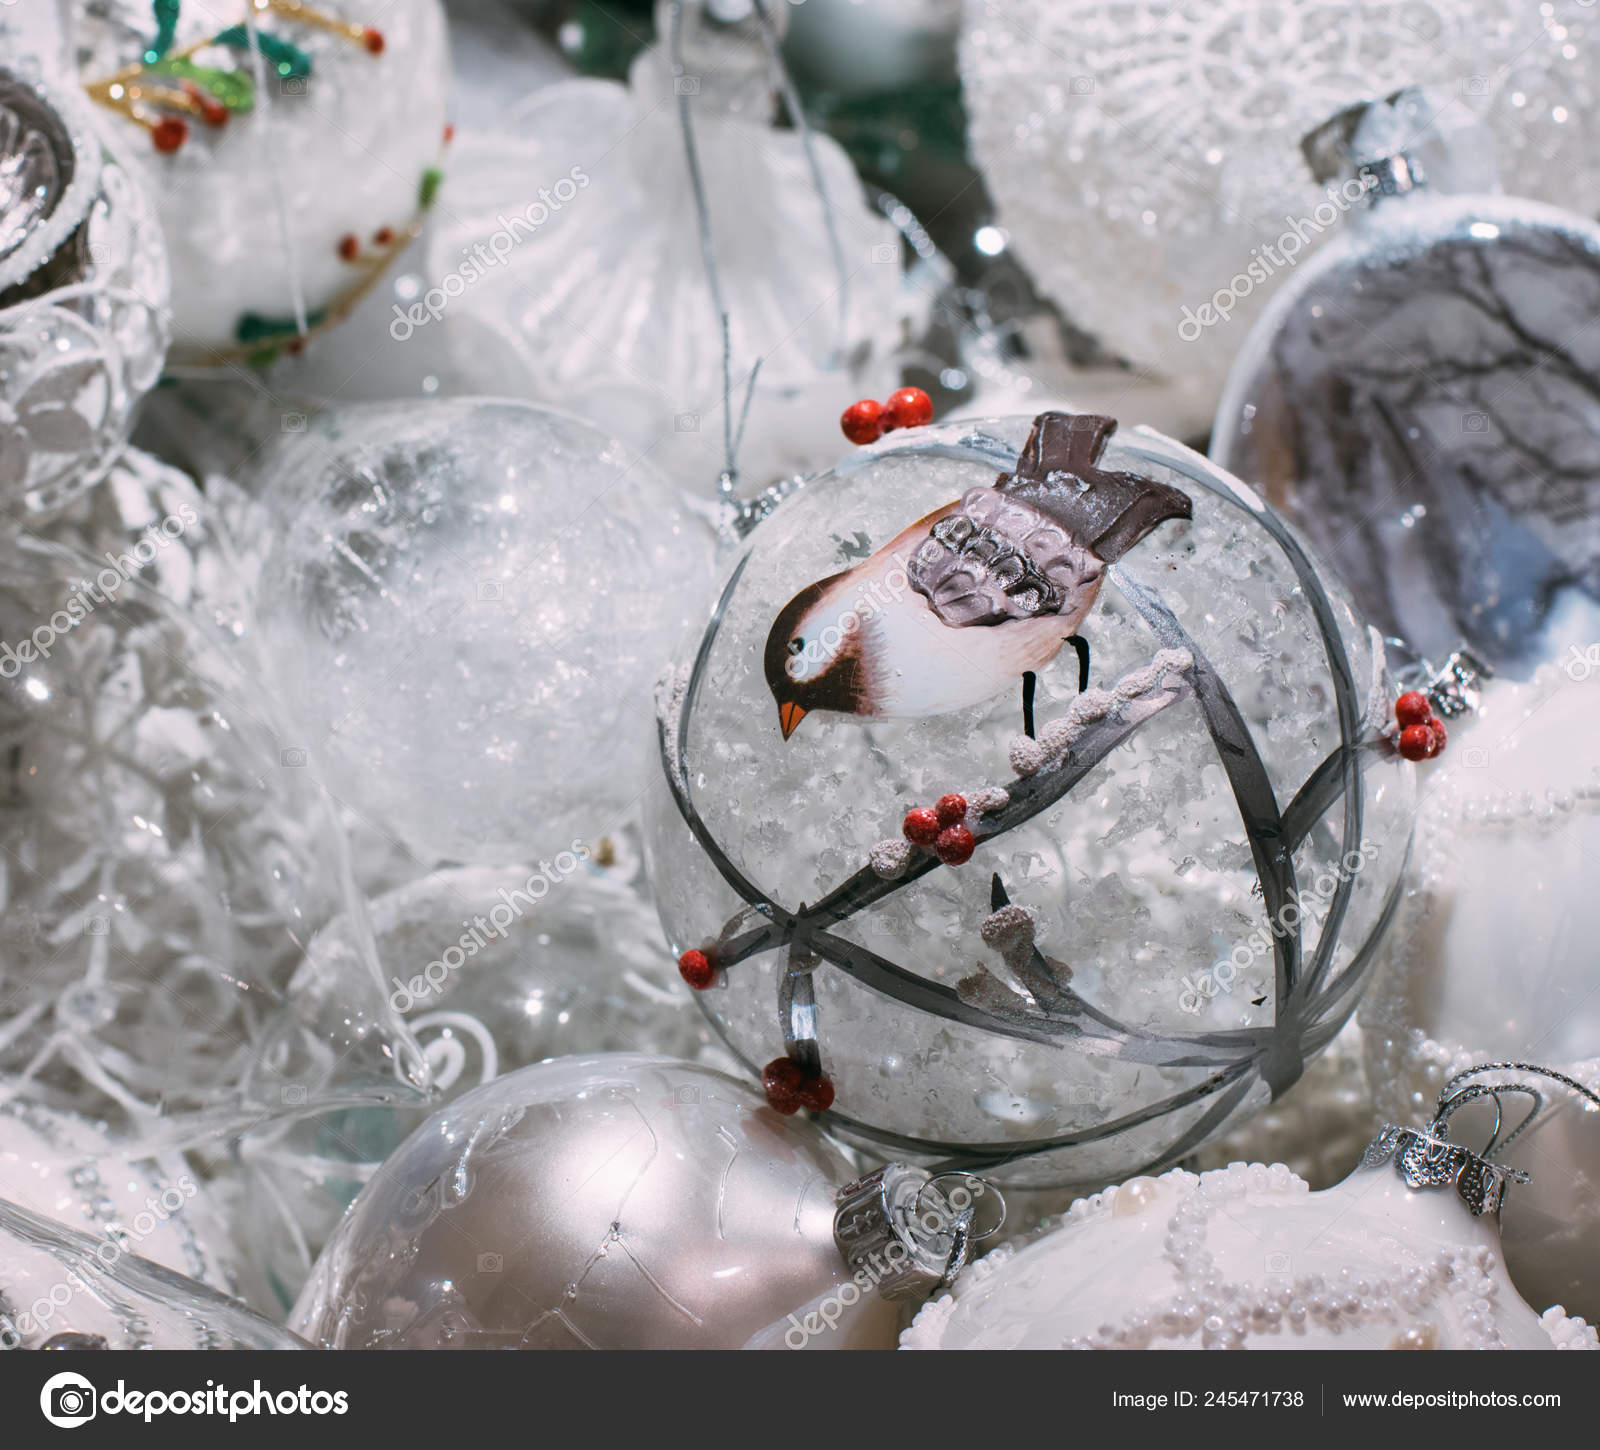 Christmas Tree Decorations All One Color White Background Stock Photo C El Caro Mail Ru 245471738